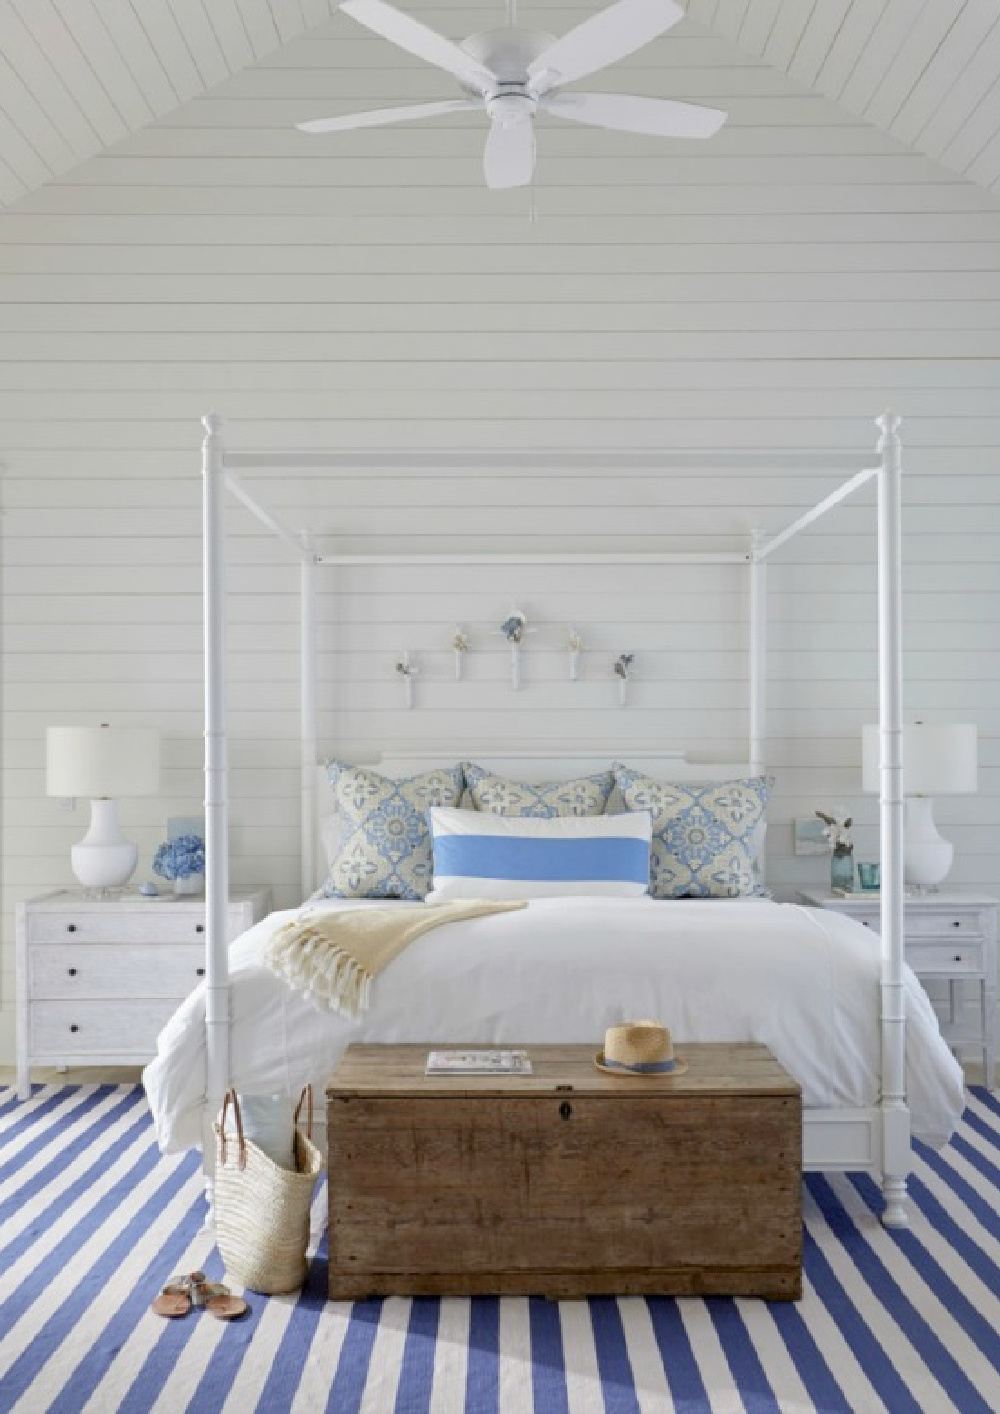 White coastal style bedroom with blue stripe rug, poster bed, and shiplap walls - architecture by Geoff Chick.